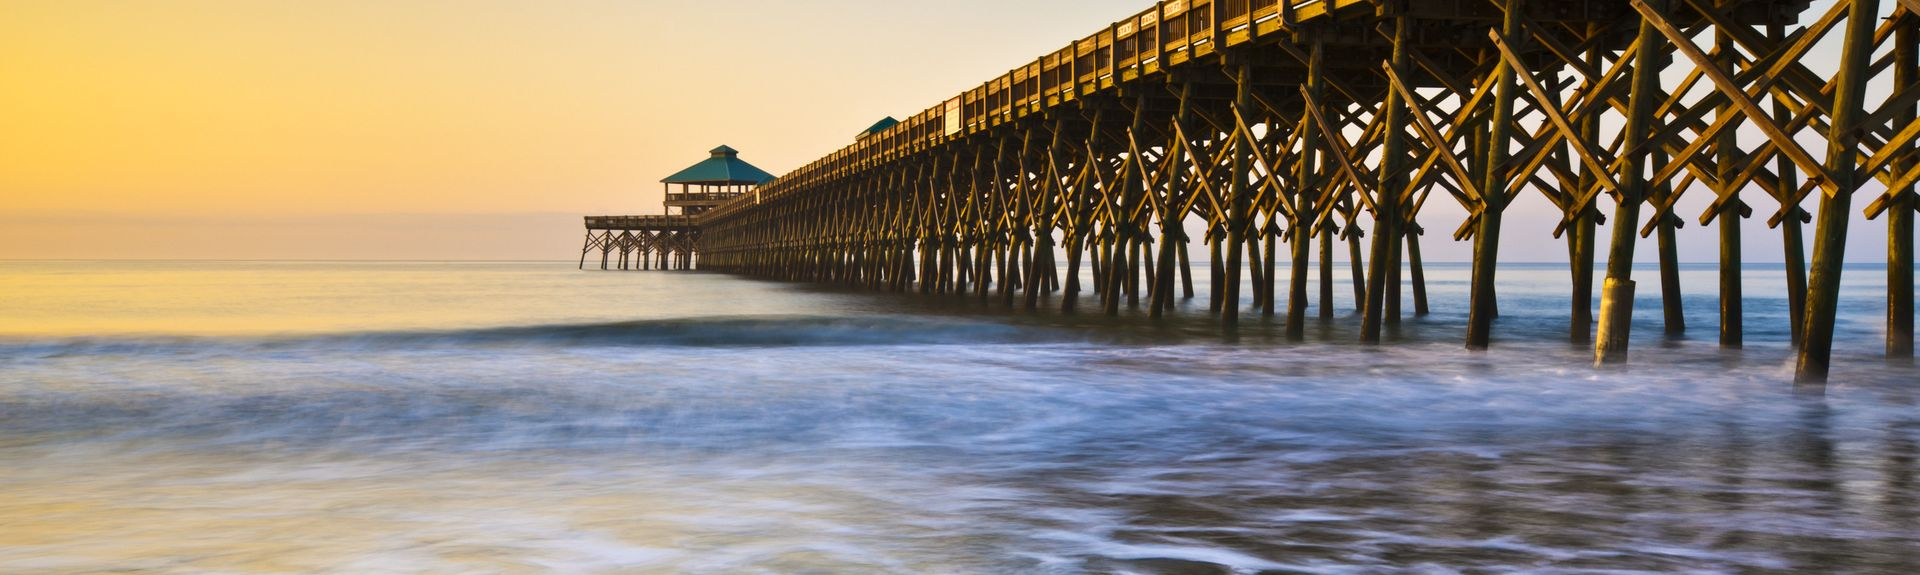 Folly Beach, South Carolina, Vereinigte Staaten